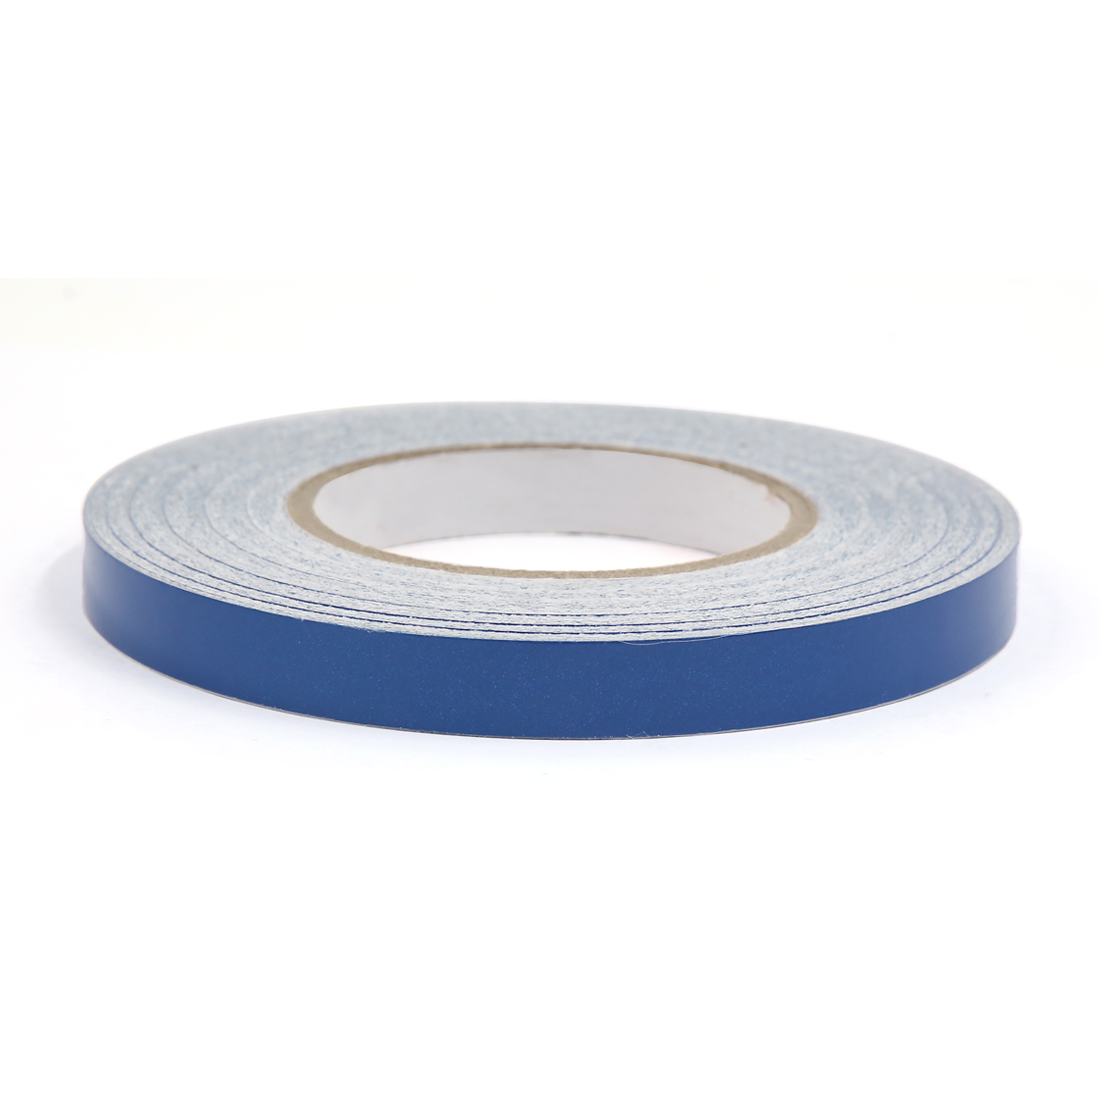 Blue Vinyl Car Reflective Tape Adhesive Decal Rim Sticker Decoration Stripe